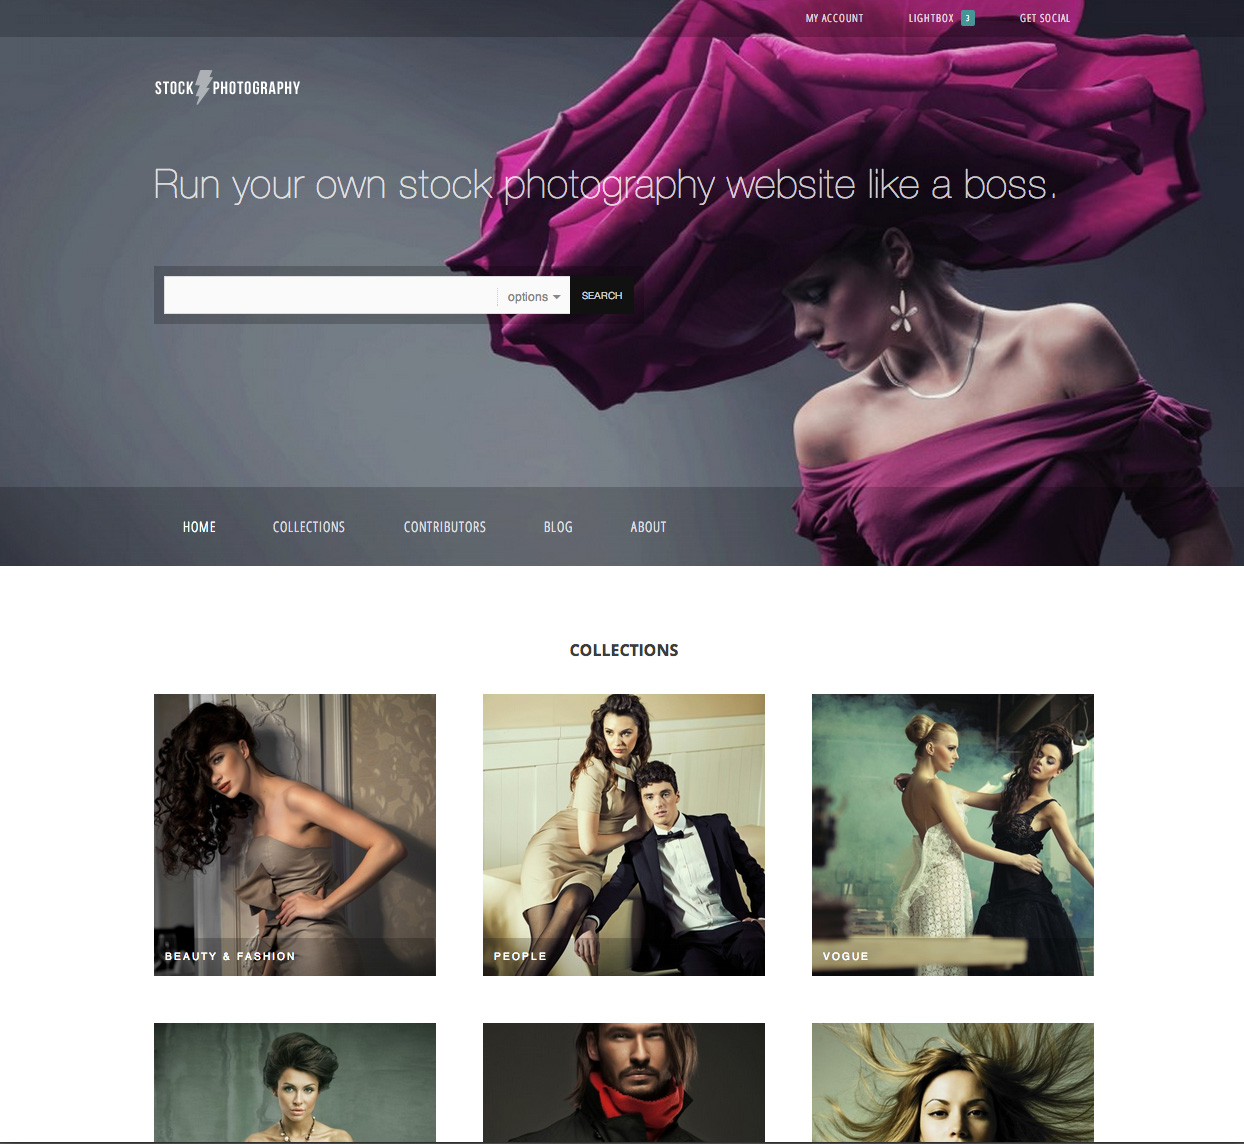 Introducing the Stock Photography theme for WordPress